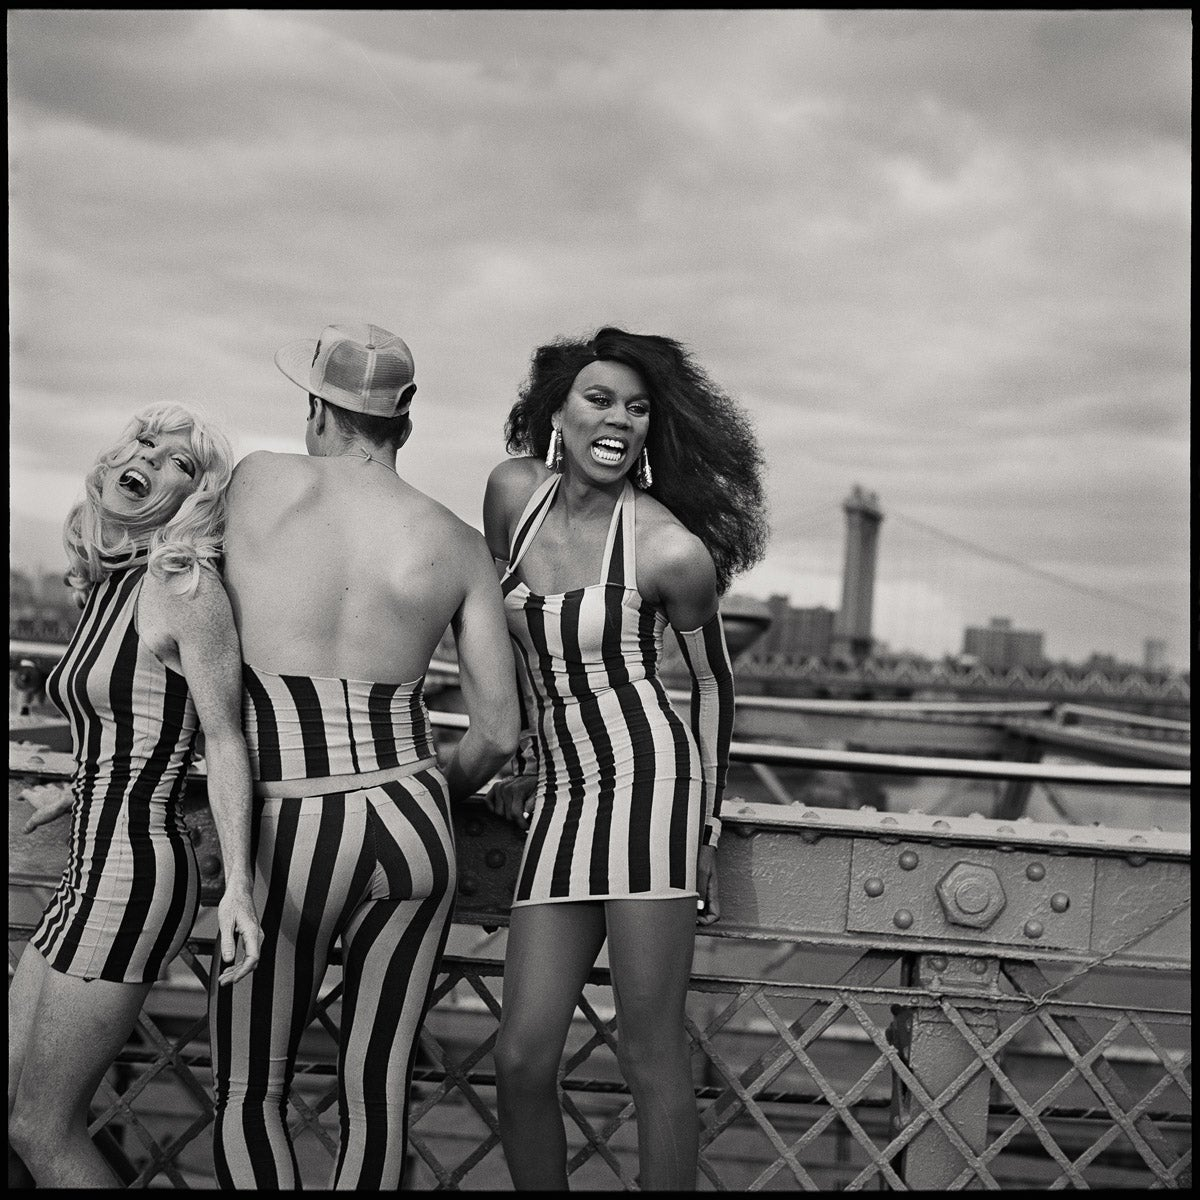 Dan Winters' Artistic Proving Ground: The Streets of New York